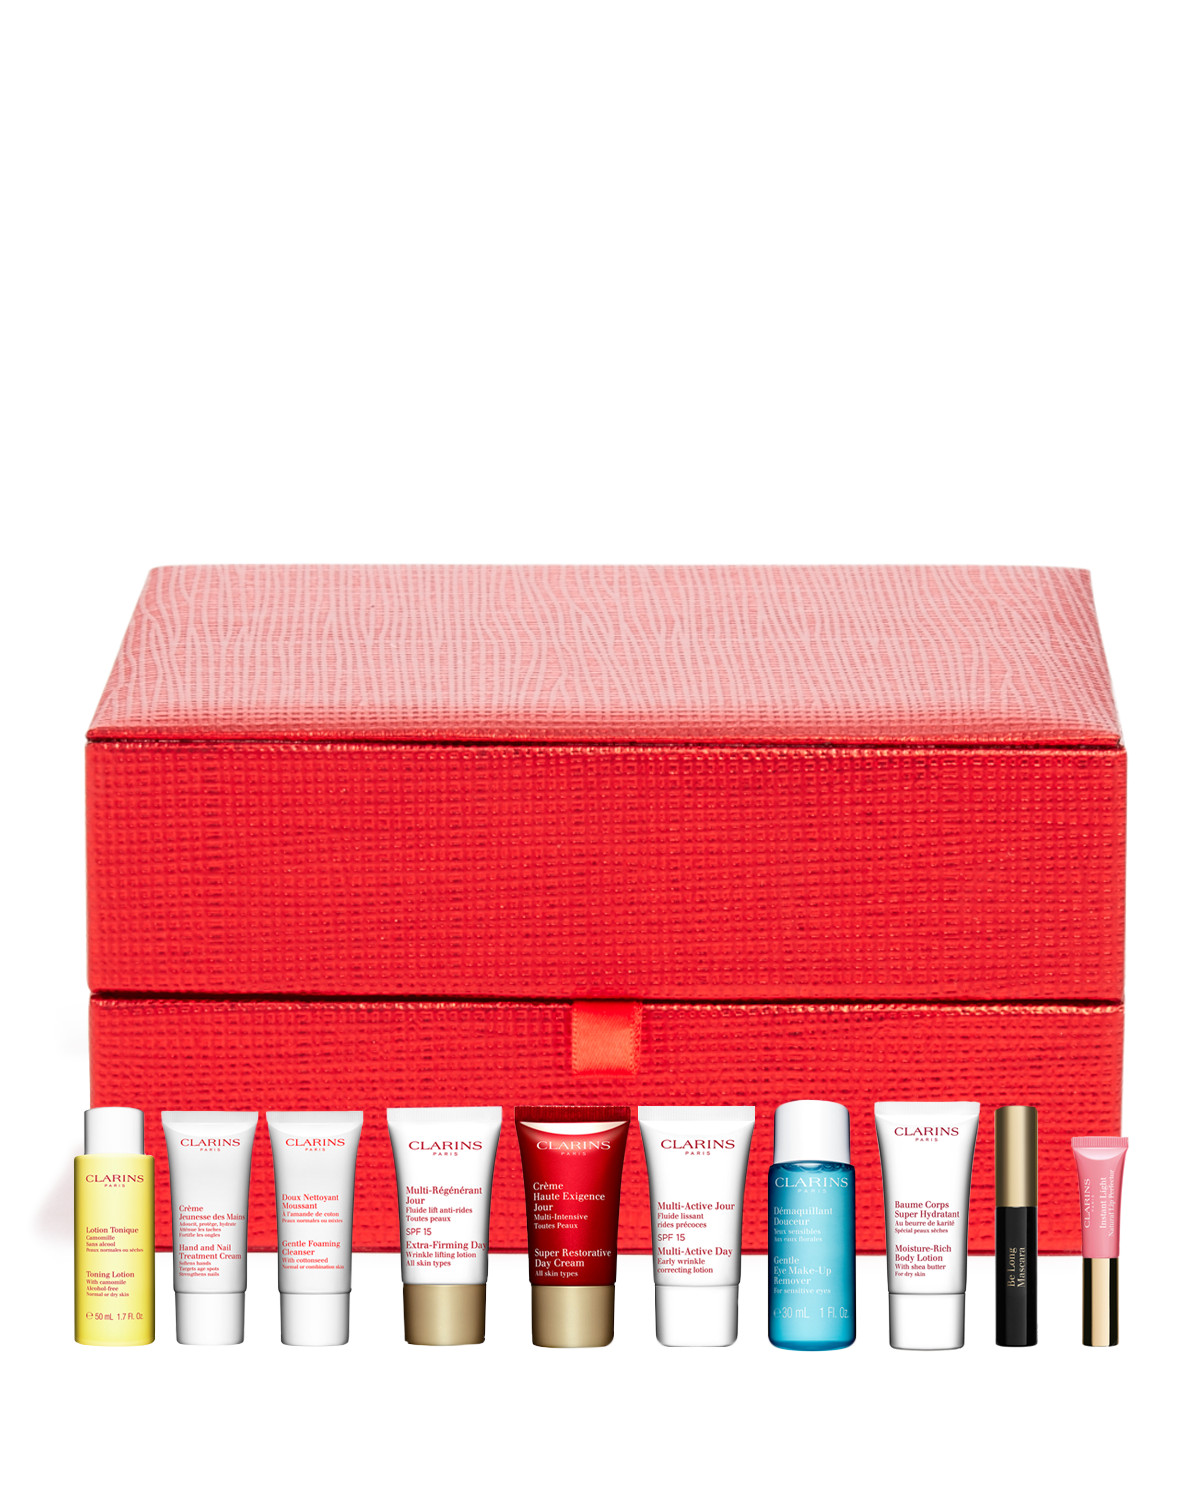 Free 4 Deluxe Samples in a Cosmetics Bag with the Purchase of Any 2 Clarins Products @ Bloomingdales